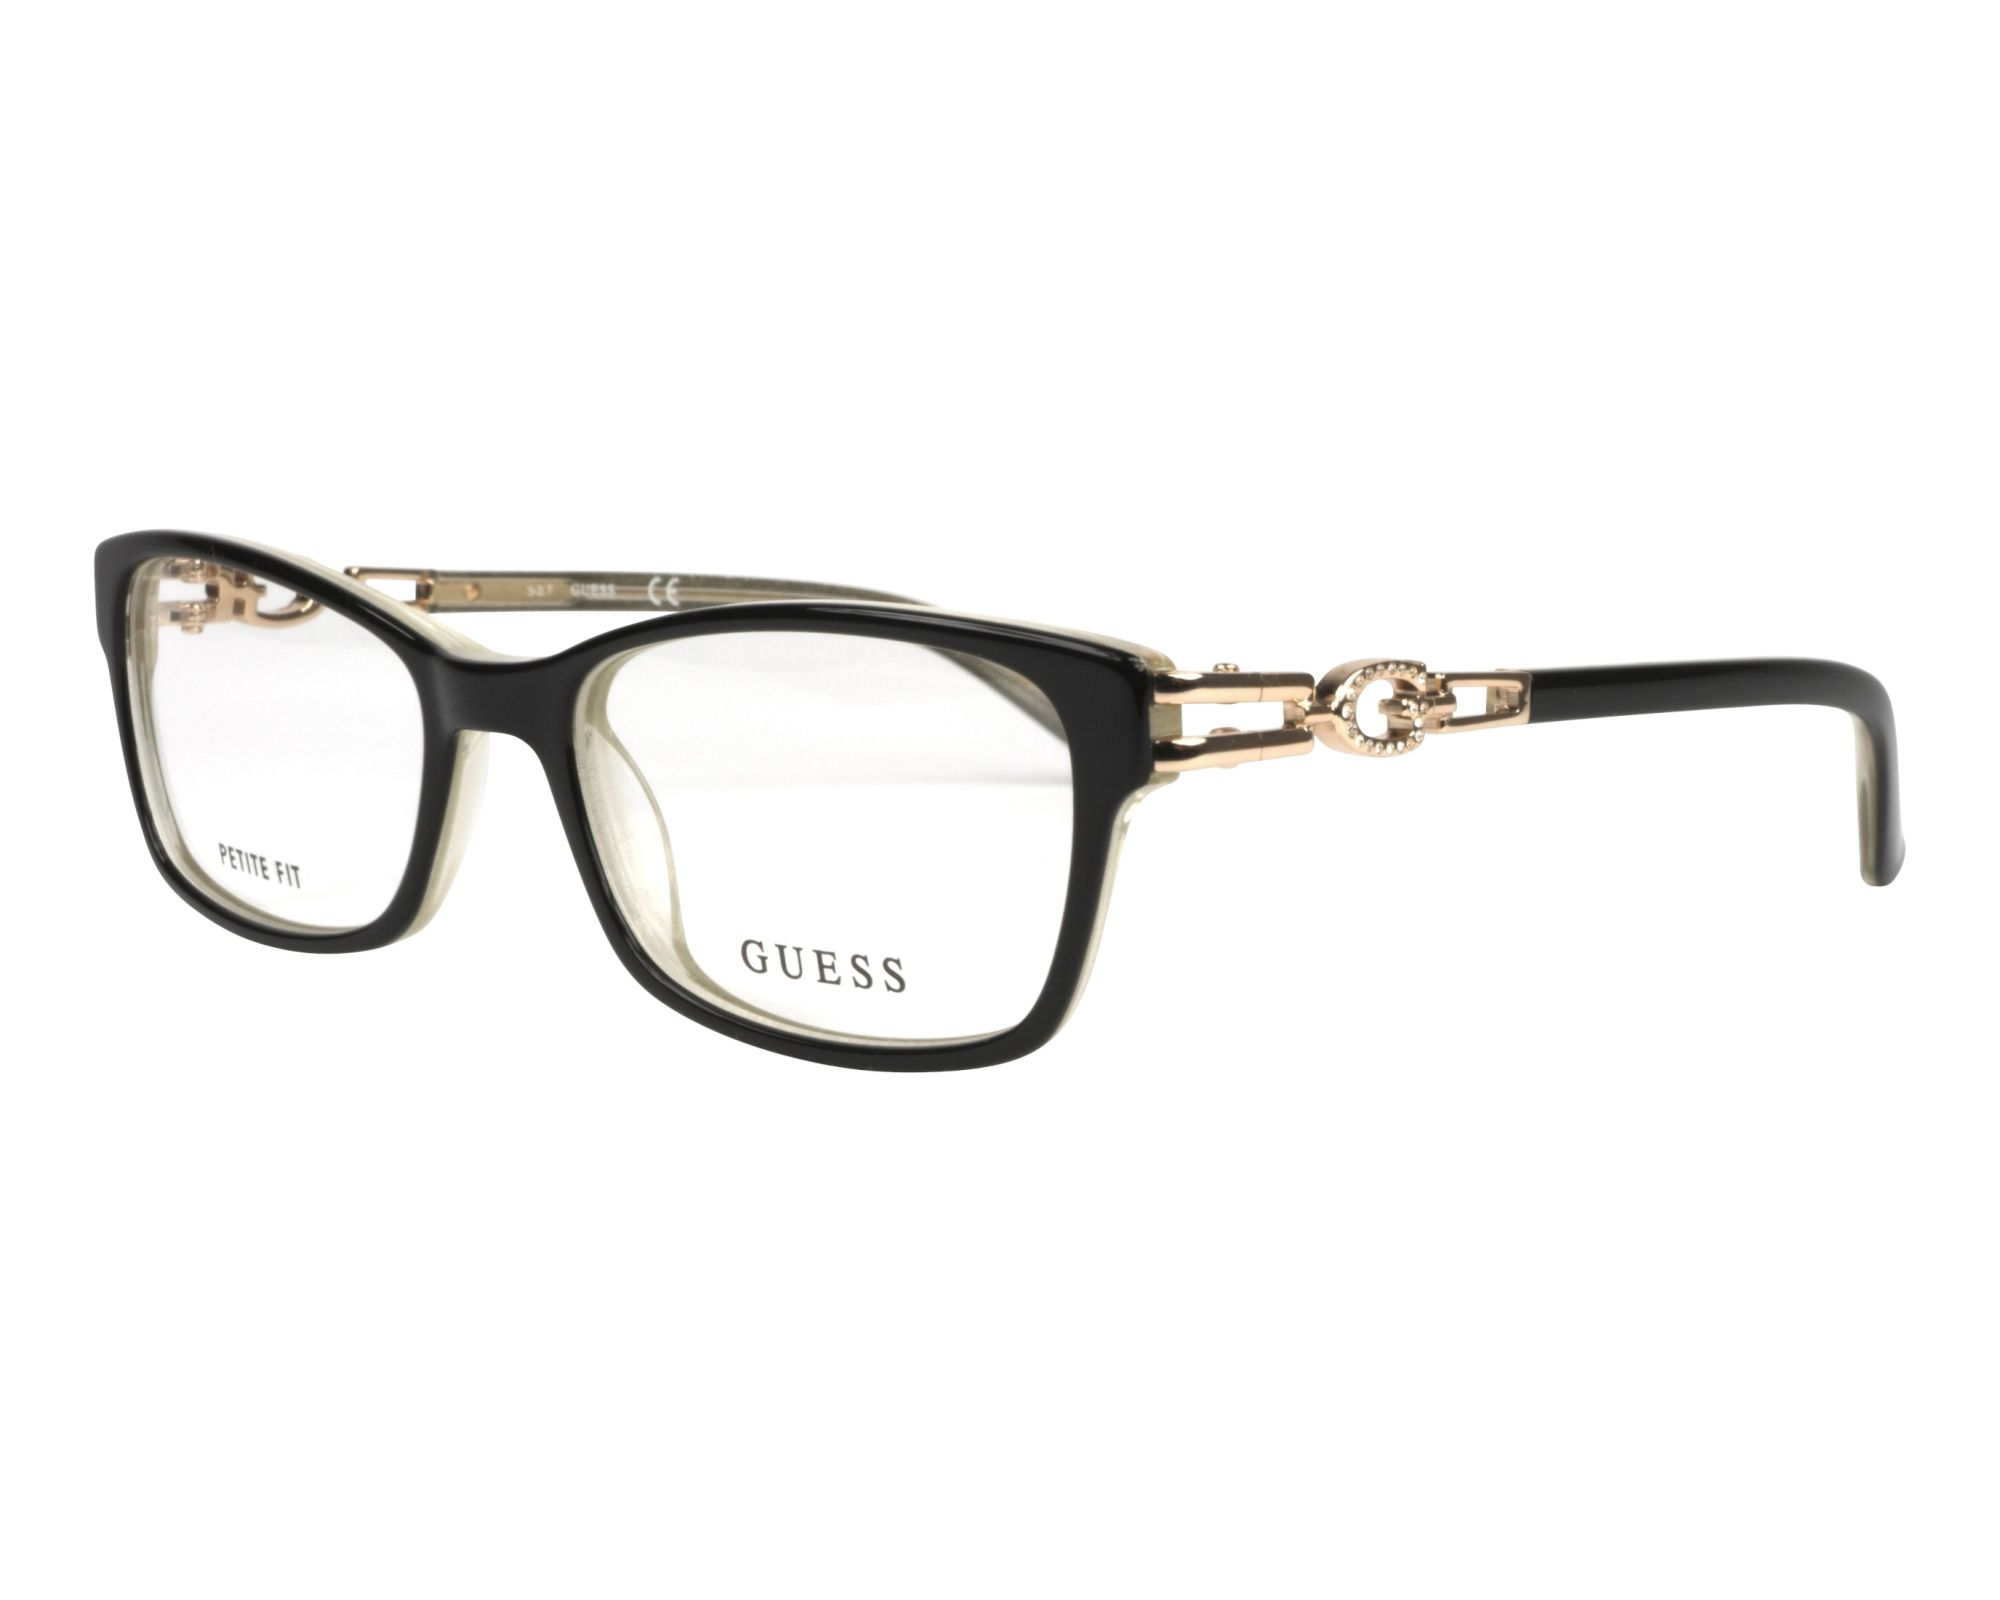 eyeglasses Guess GU-2677-V 001 50-17 Black Crystal profile view